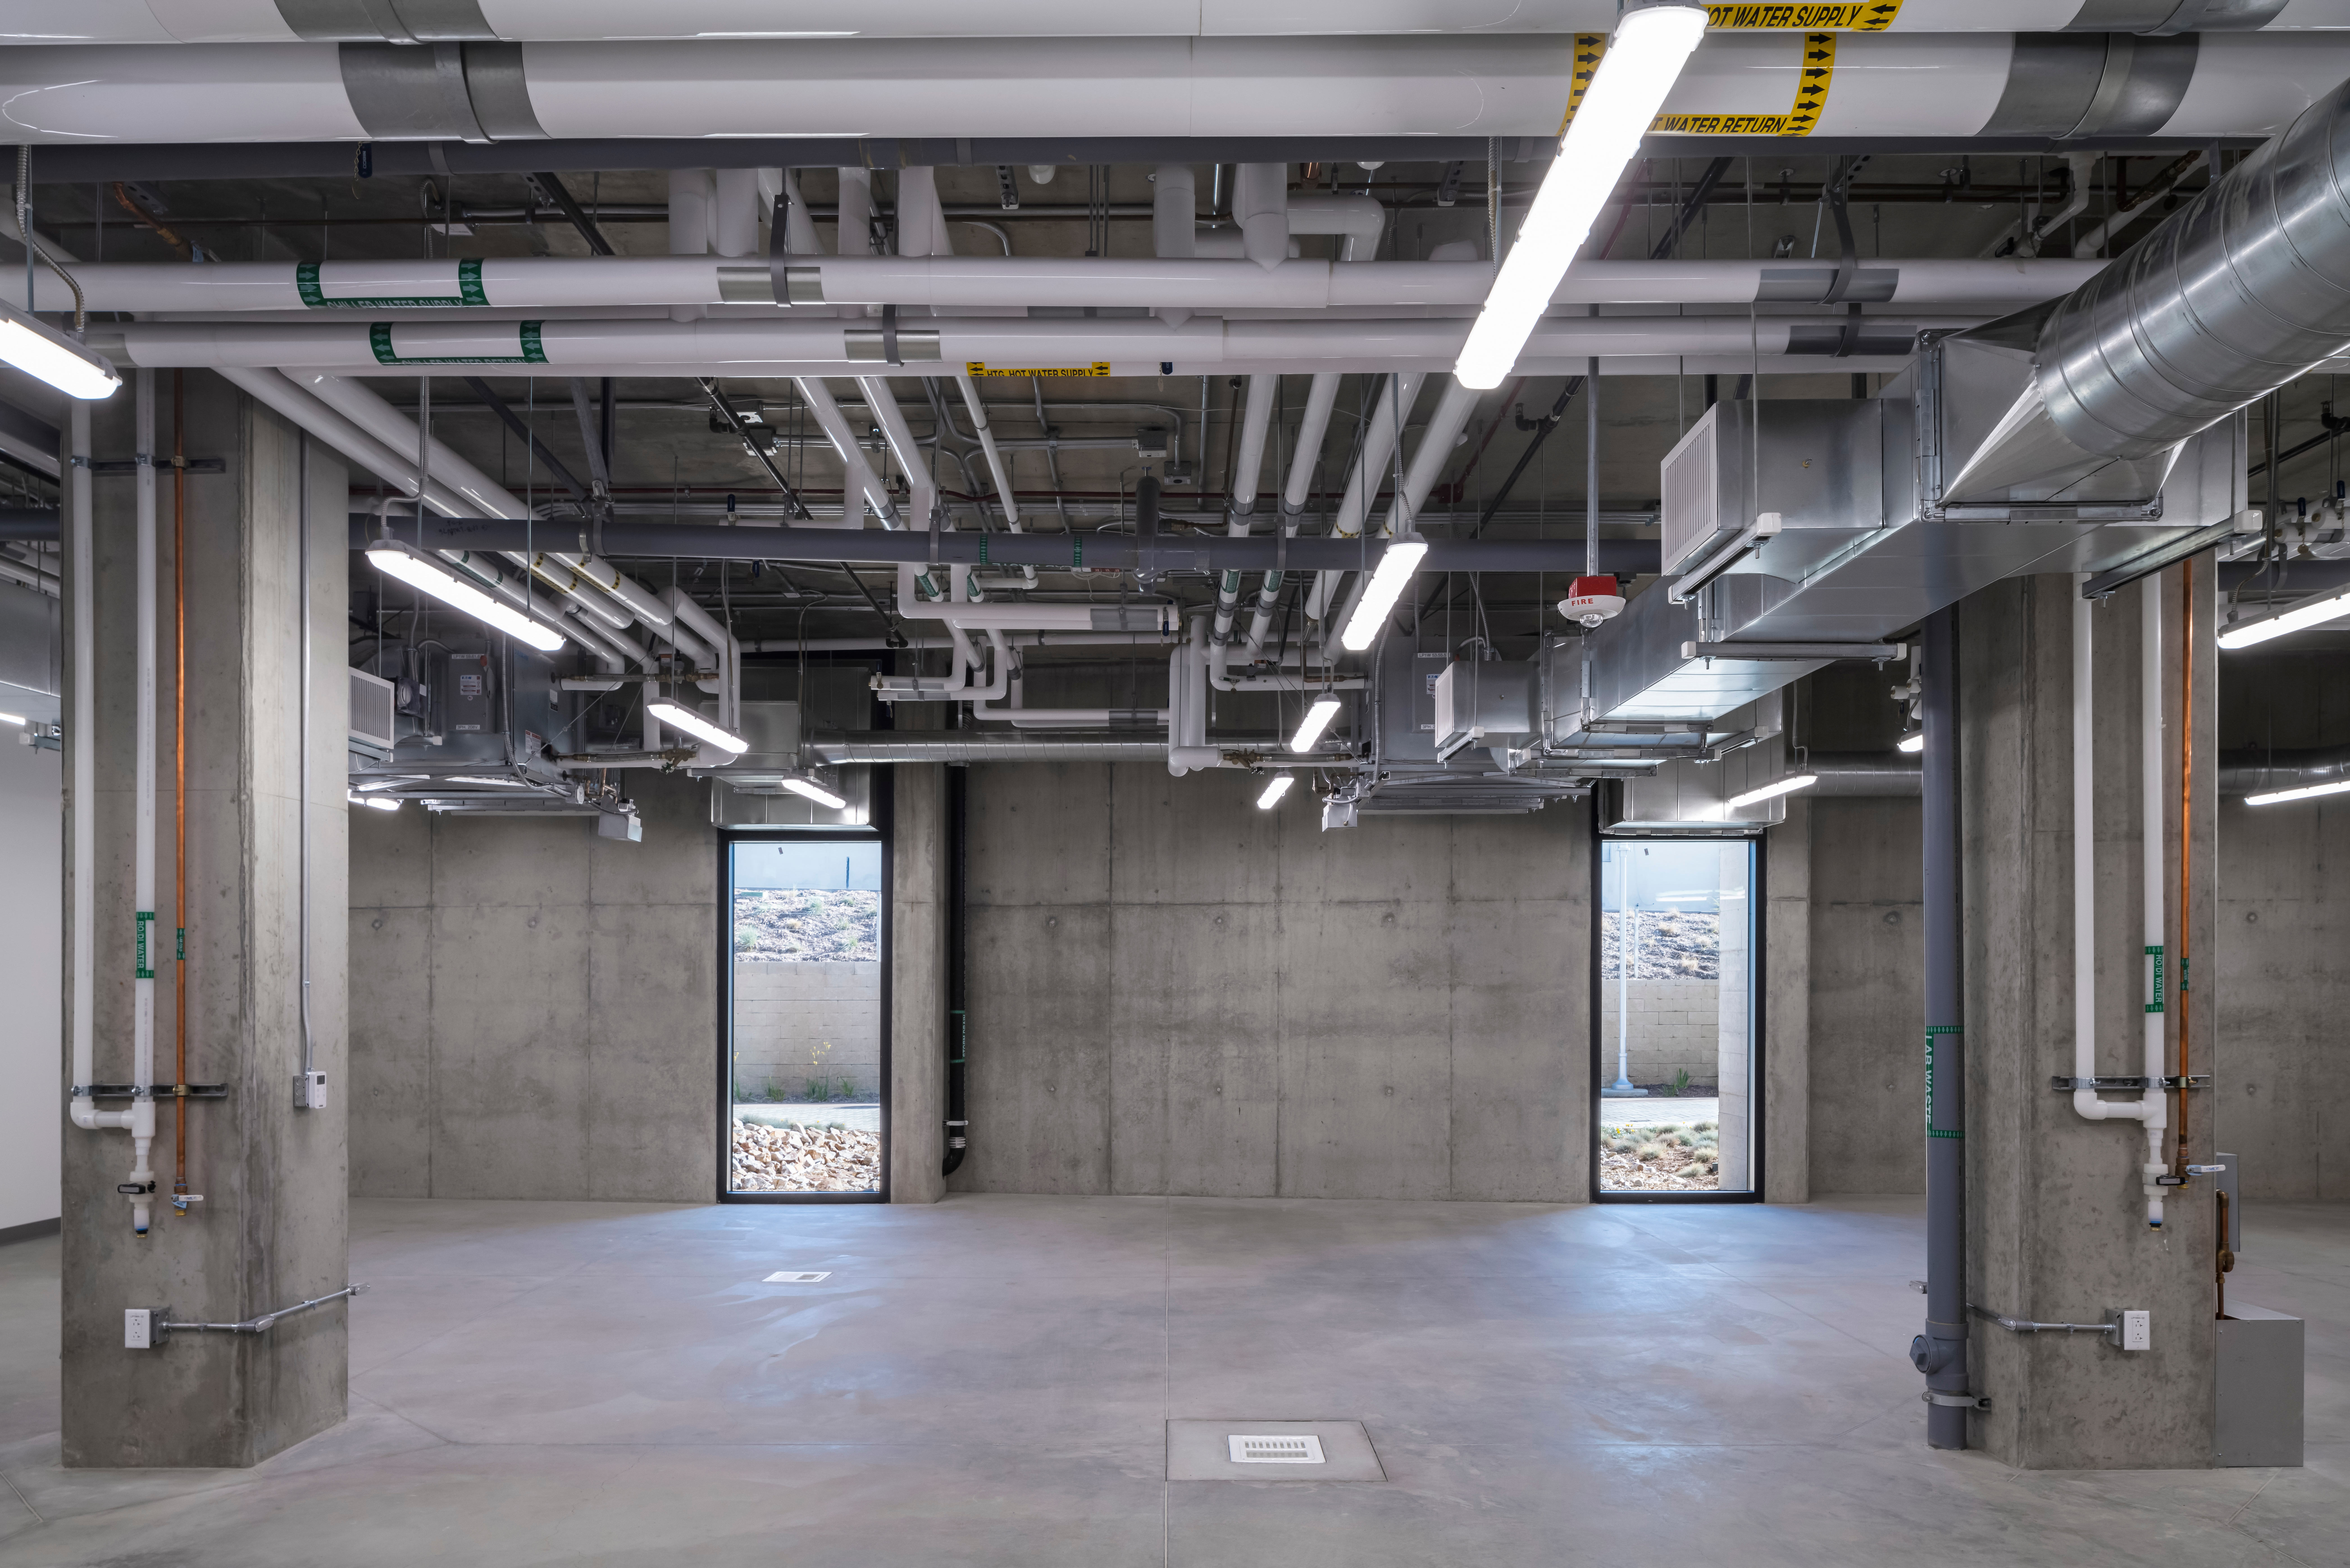 UC Riverside Open Ceiling Hvac, Plumbing and Fire Protection Systems